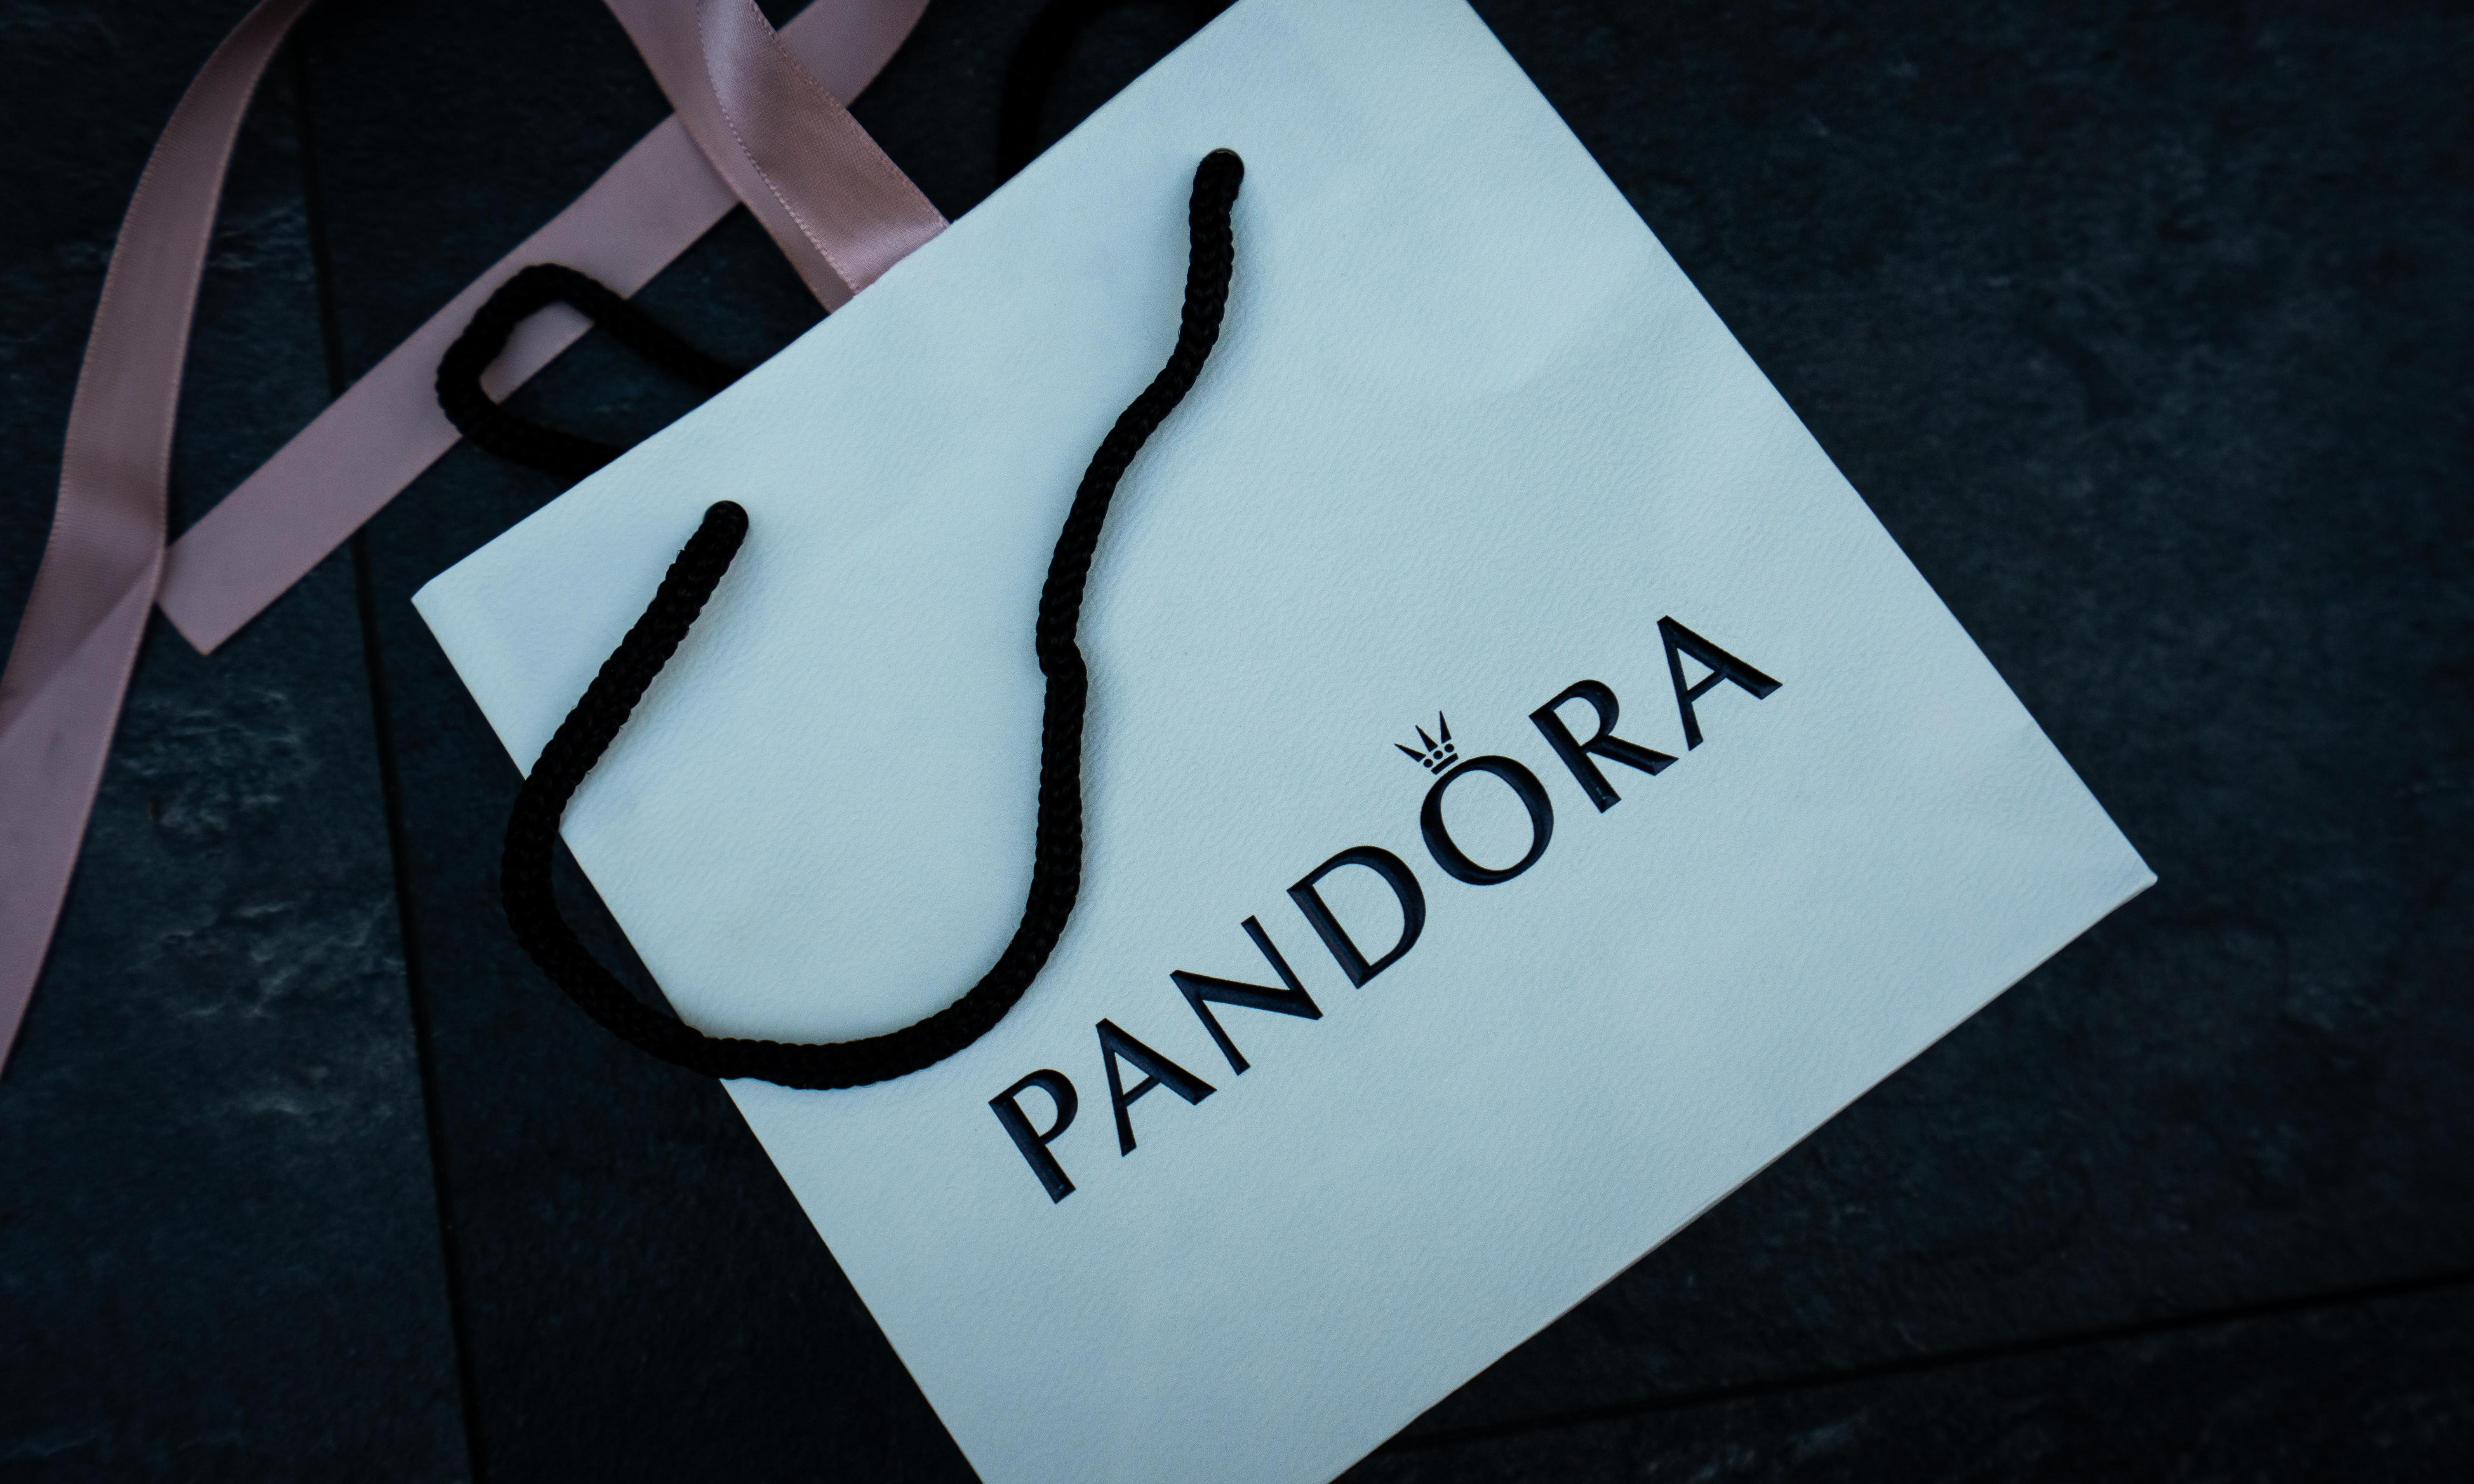 Pandora parcel lacked charm – and now I can't get an answer